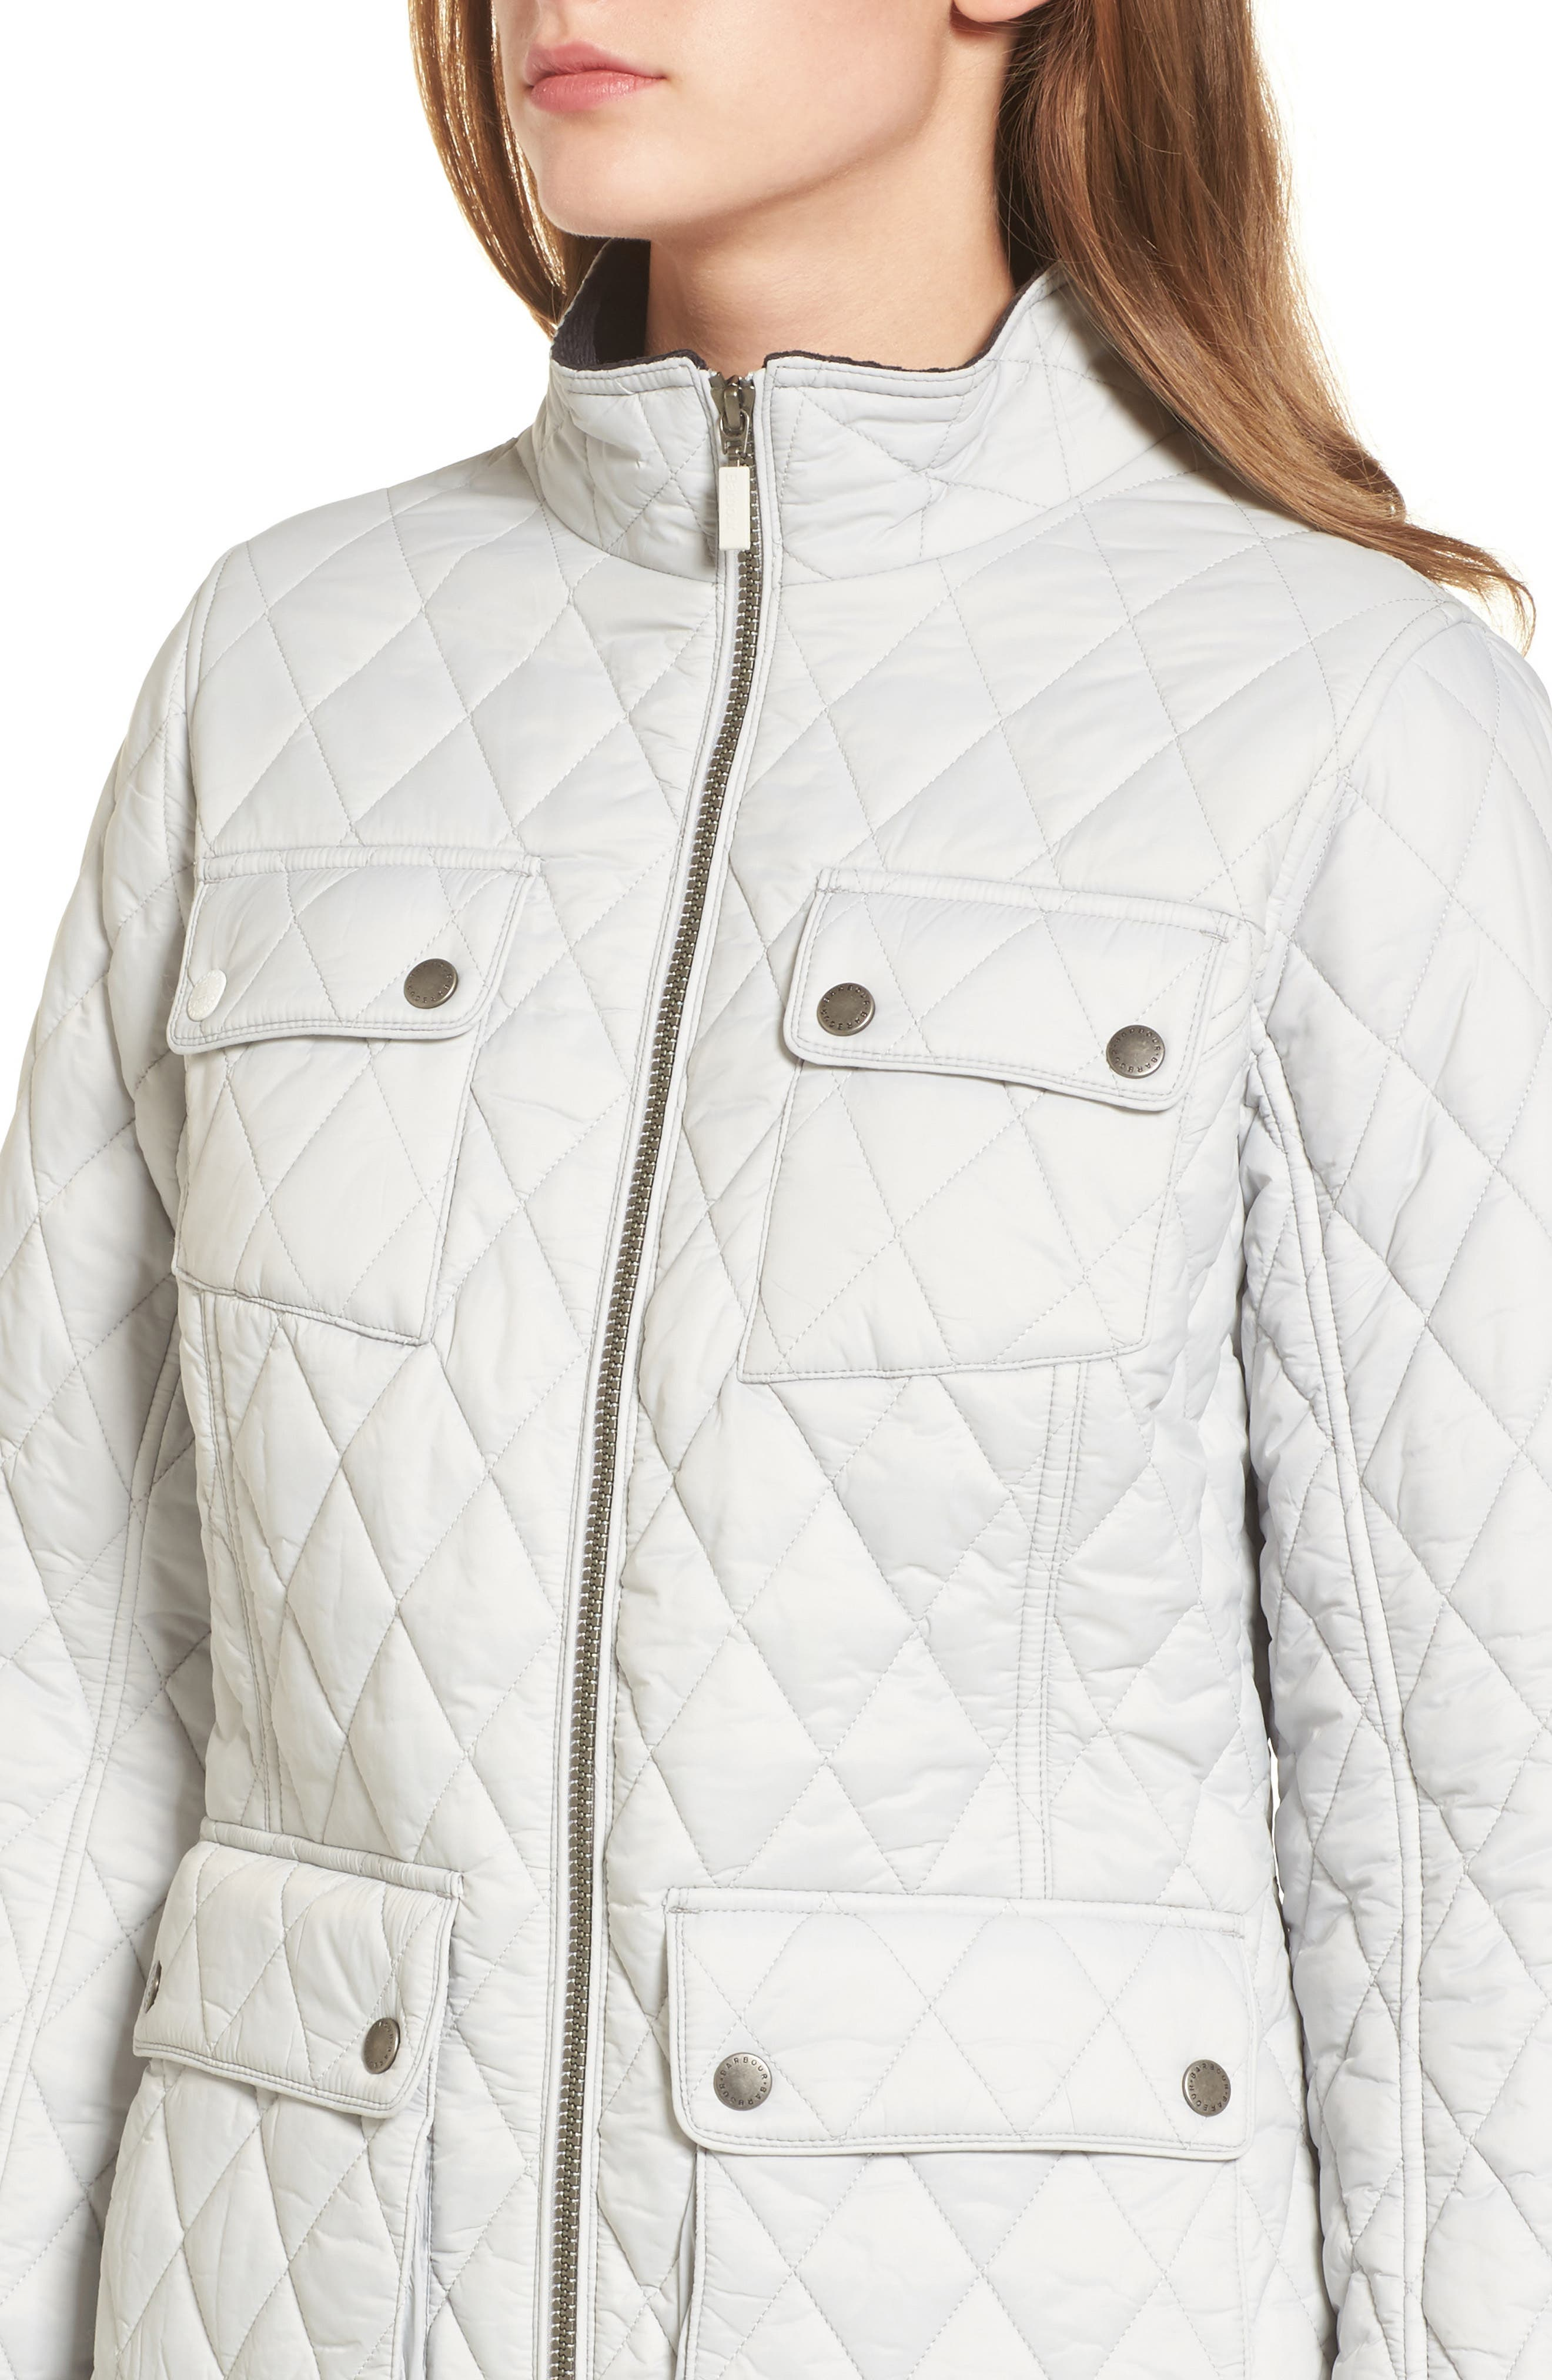 Dolostone Quilted Jacket,                             Alternate thumbnail 4, color,                             Ice White